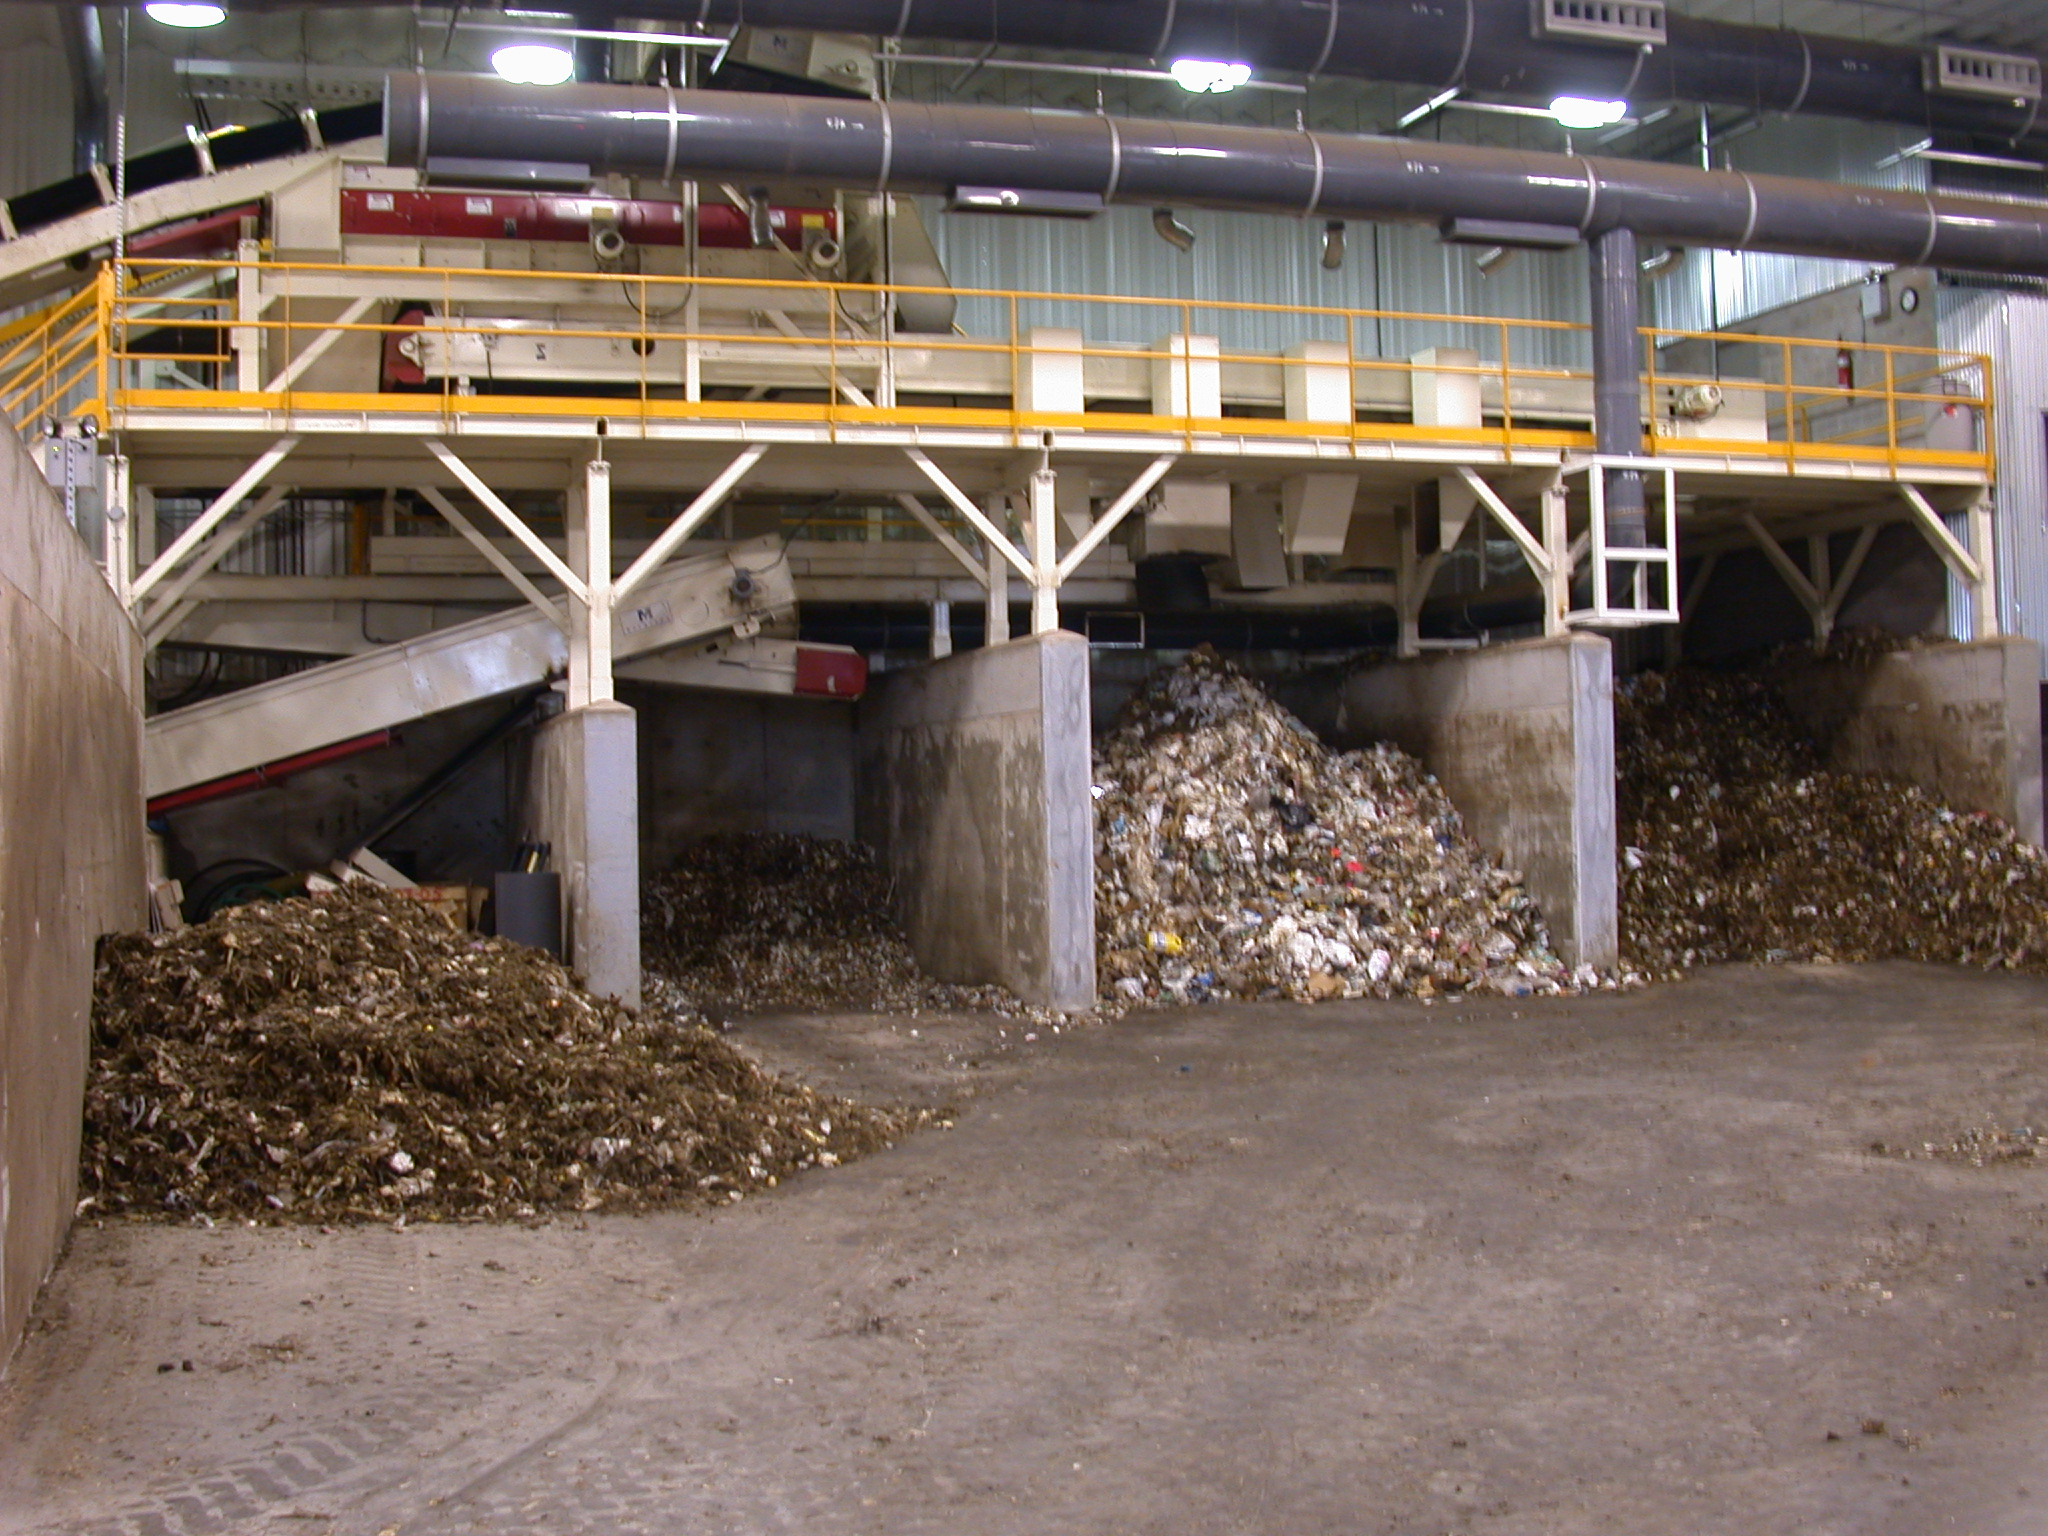 The feedstock is discharged into a holding bunker. Over 90% of the oversized materials removed by the star screen are cardboard, box board, or wood which are conveyed to a shredder. The shredded materials are discharged into a separate holding bunker for use as bulking materials.Additional bunkers for homogeneous organics and amendment materials are also provided in the Receiving Building. -